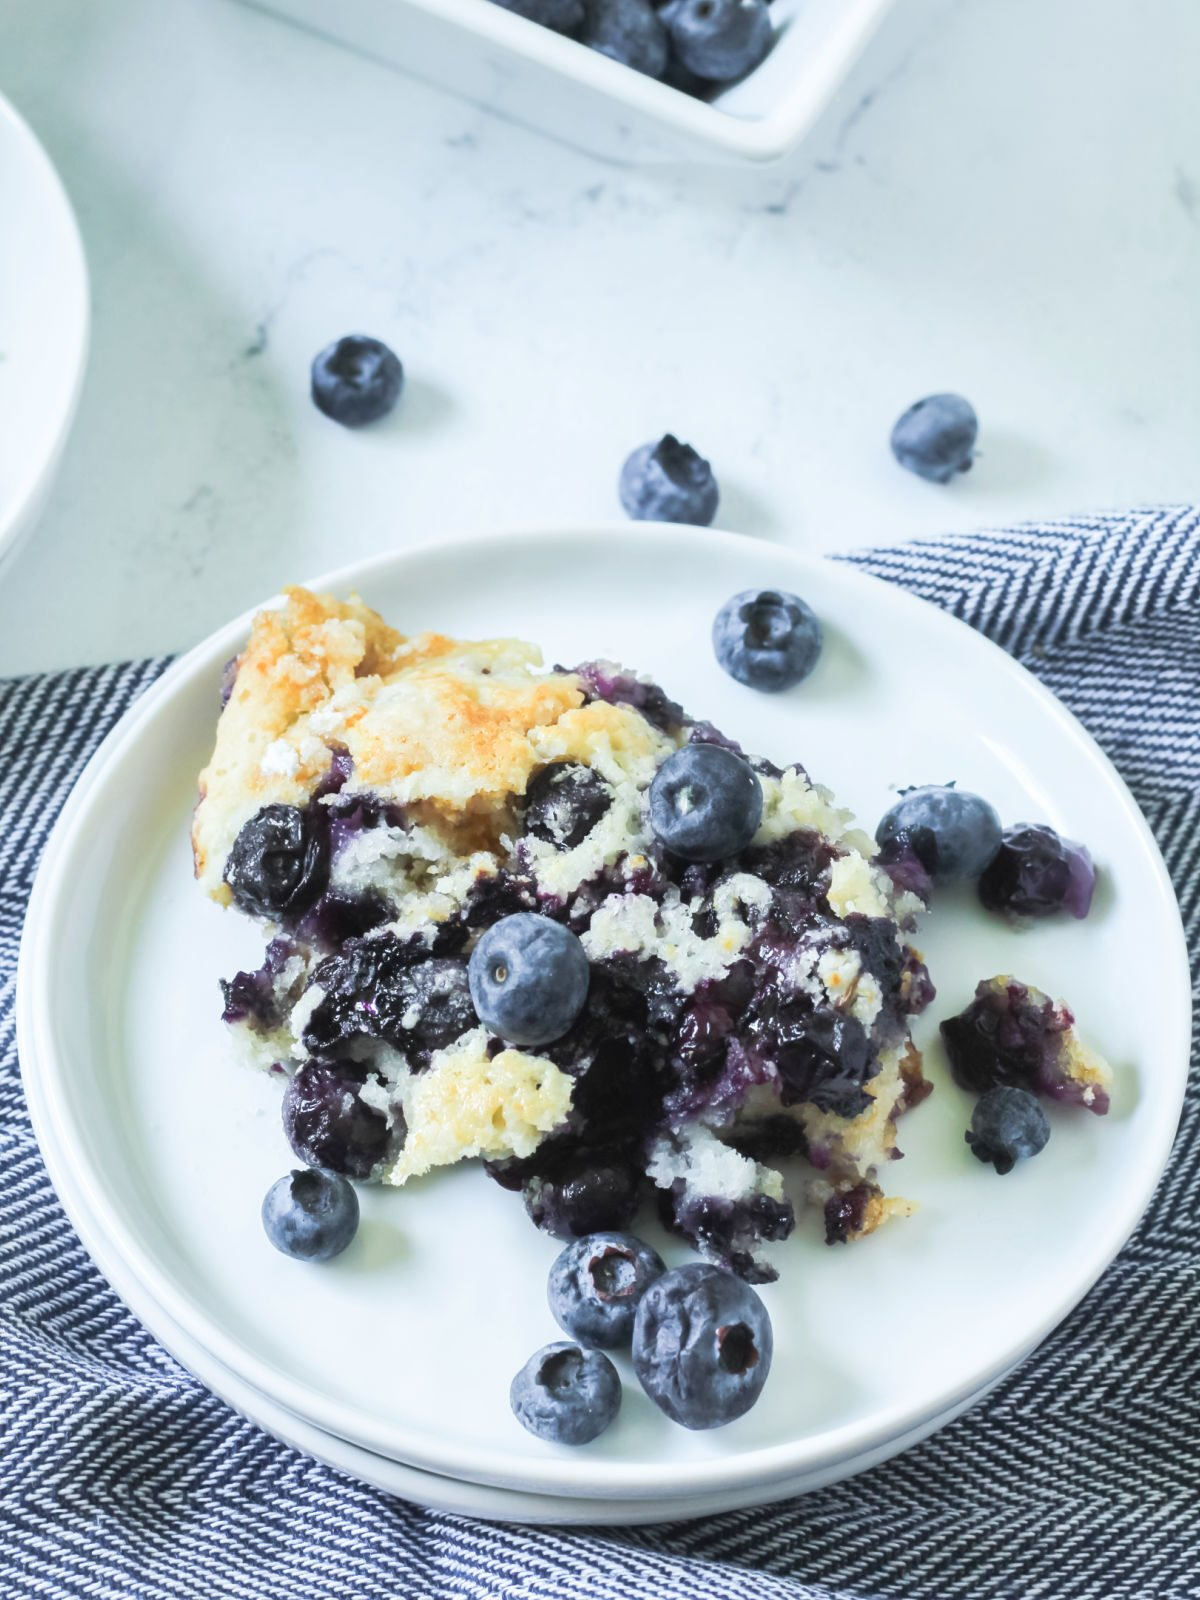 Blueberry cobbler topped with fresh blueberries on a white plate.